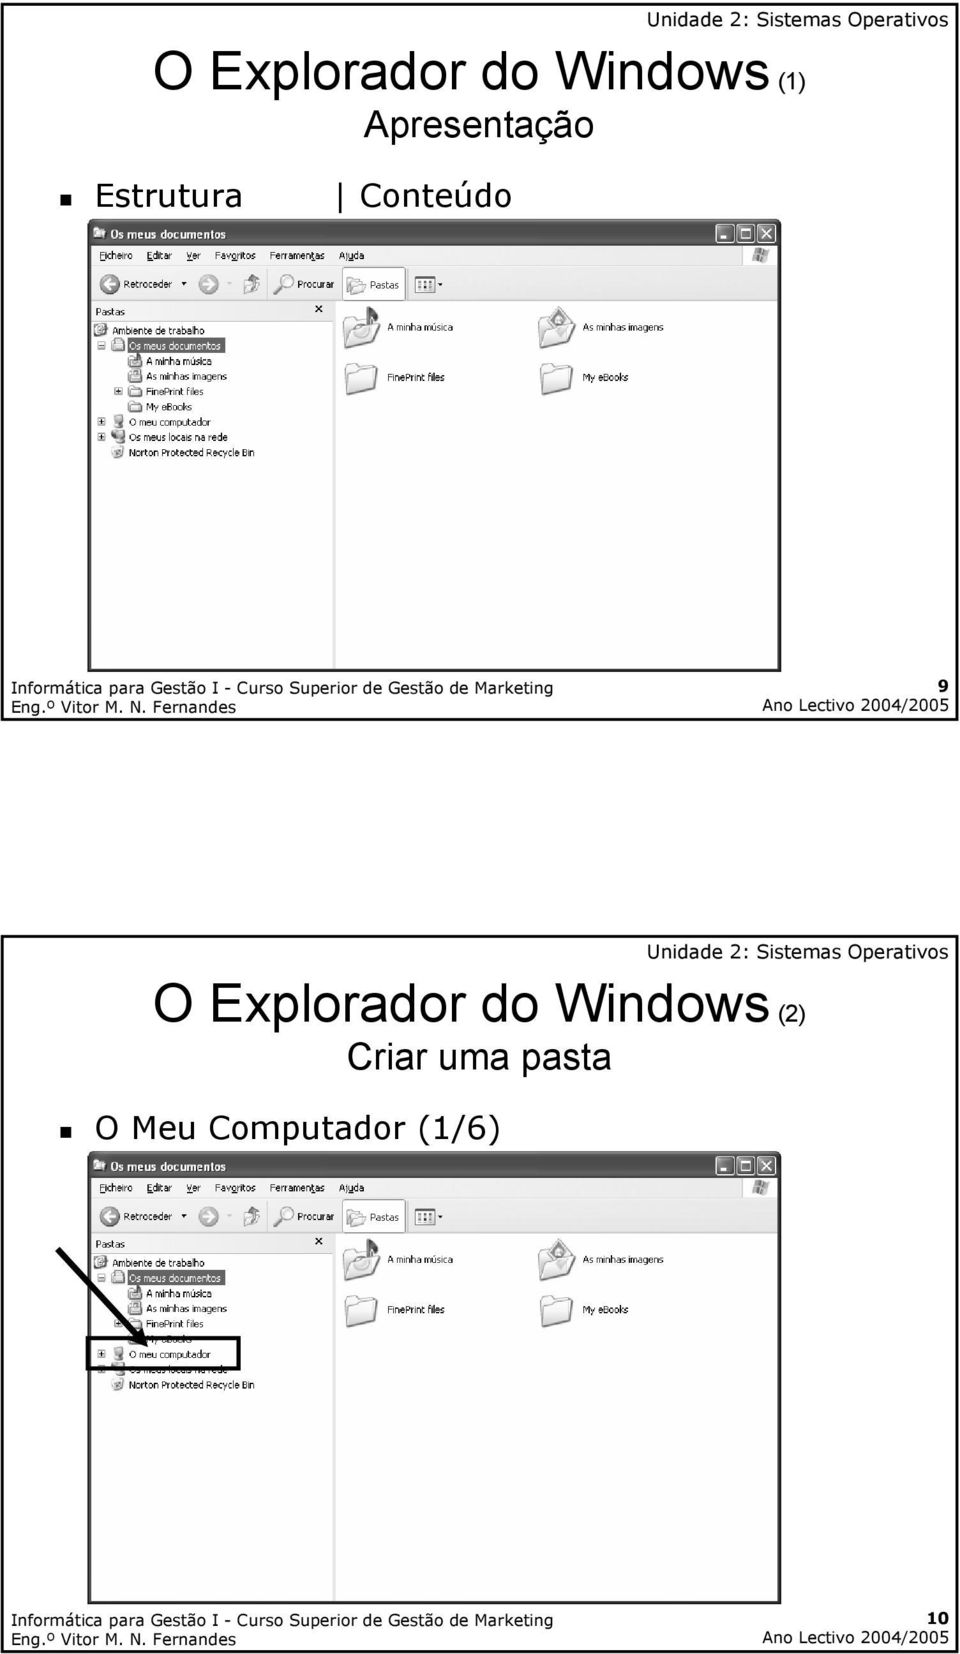 9 O Explorador do Windows (2)